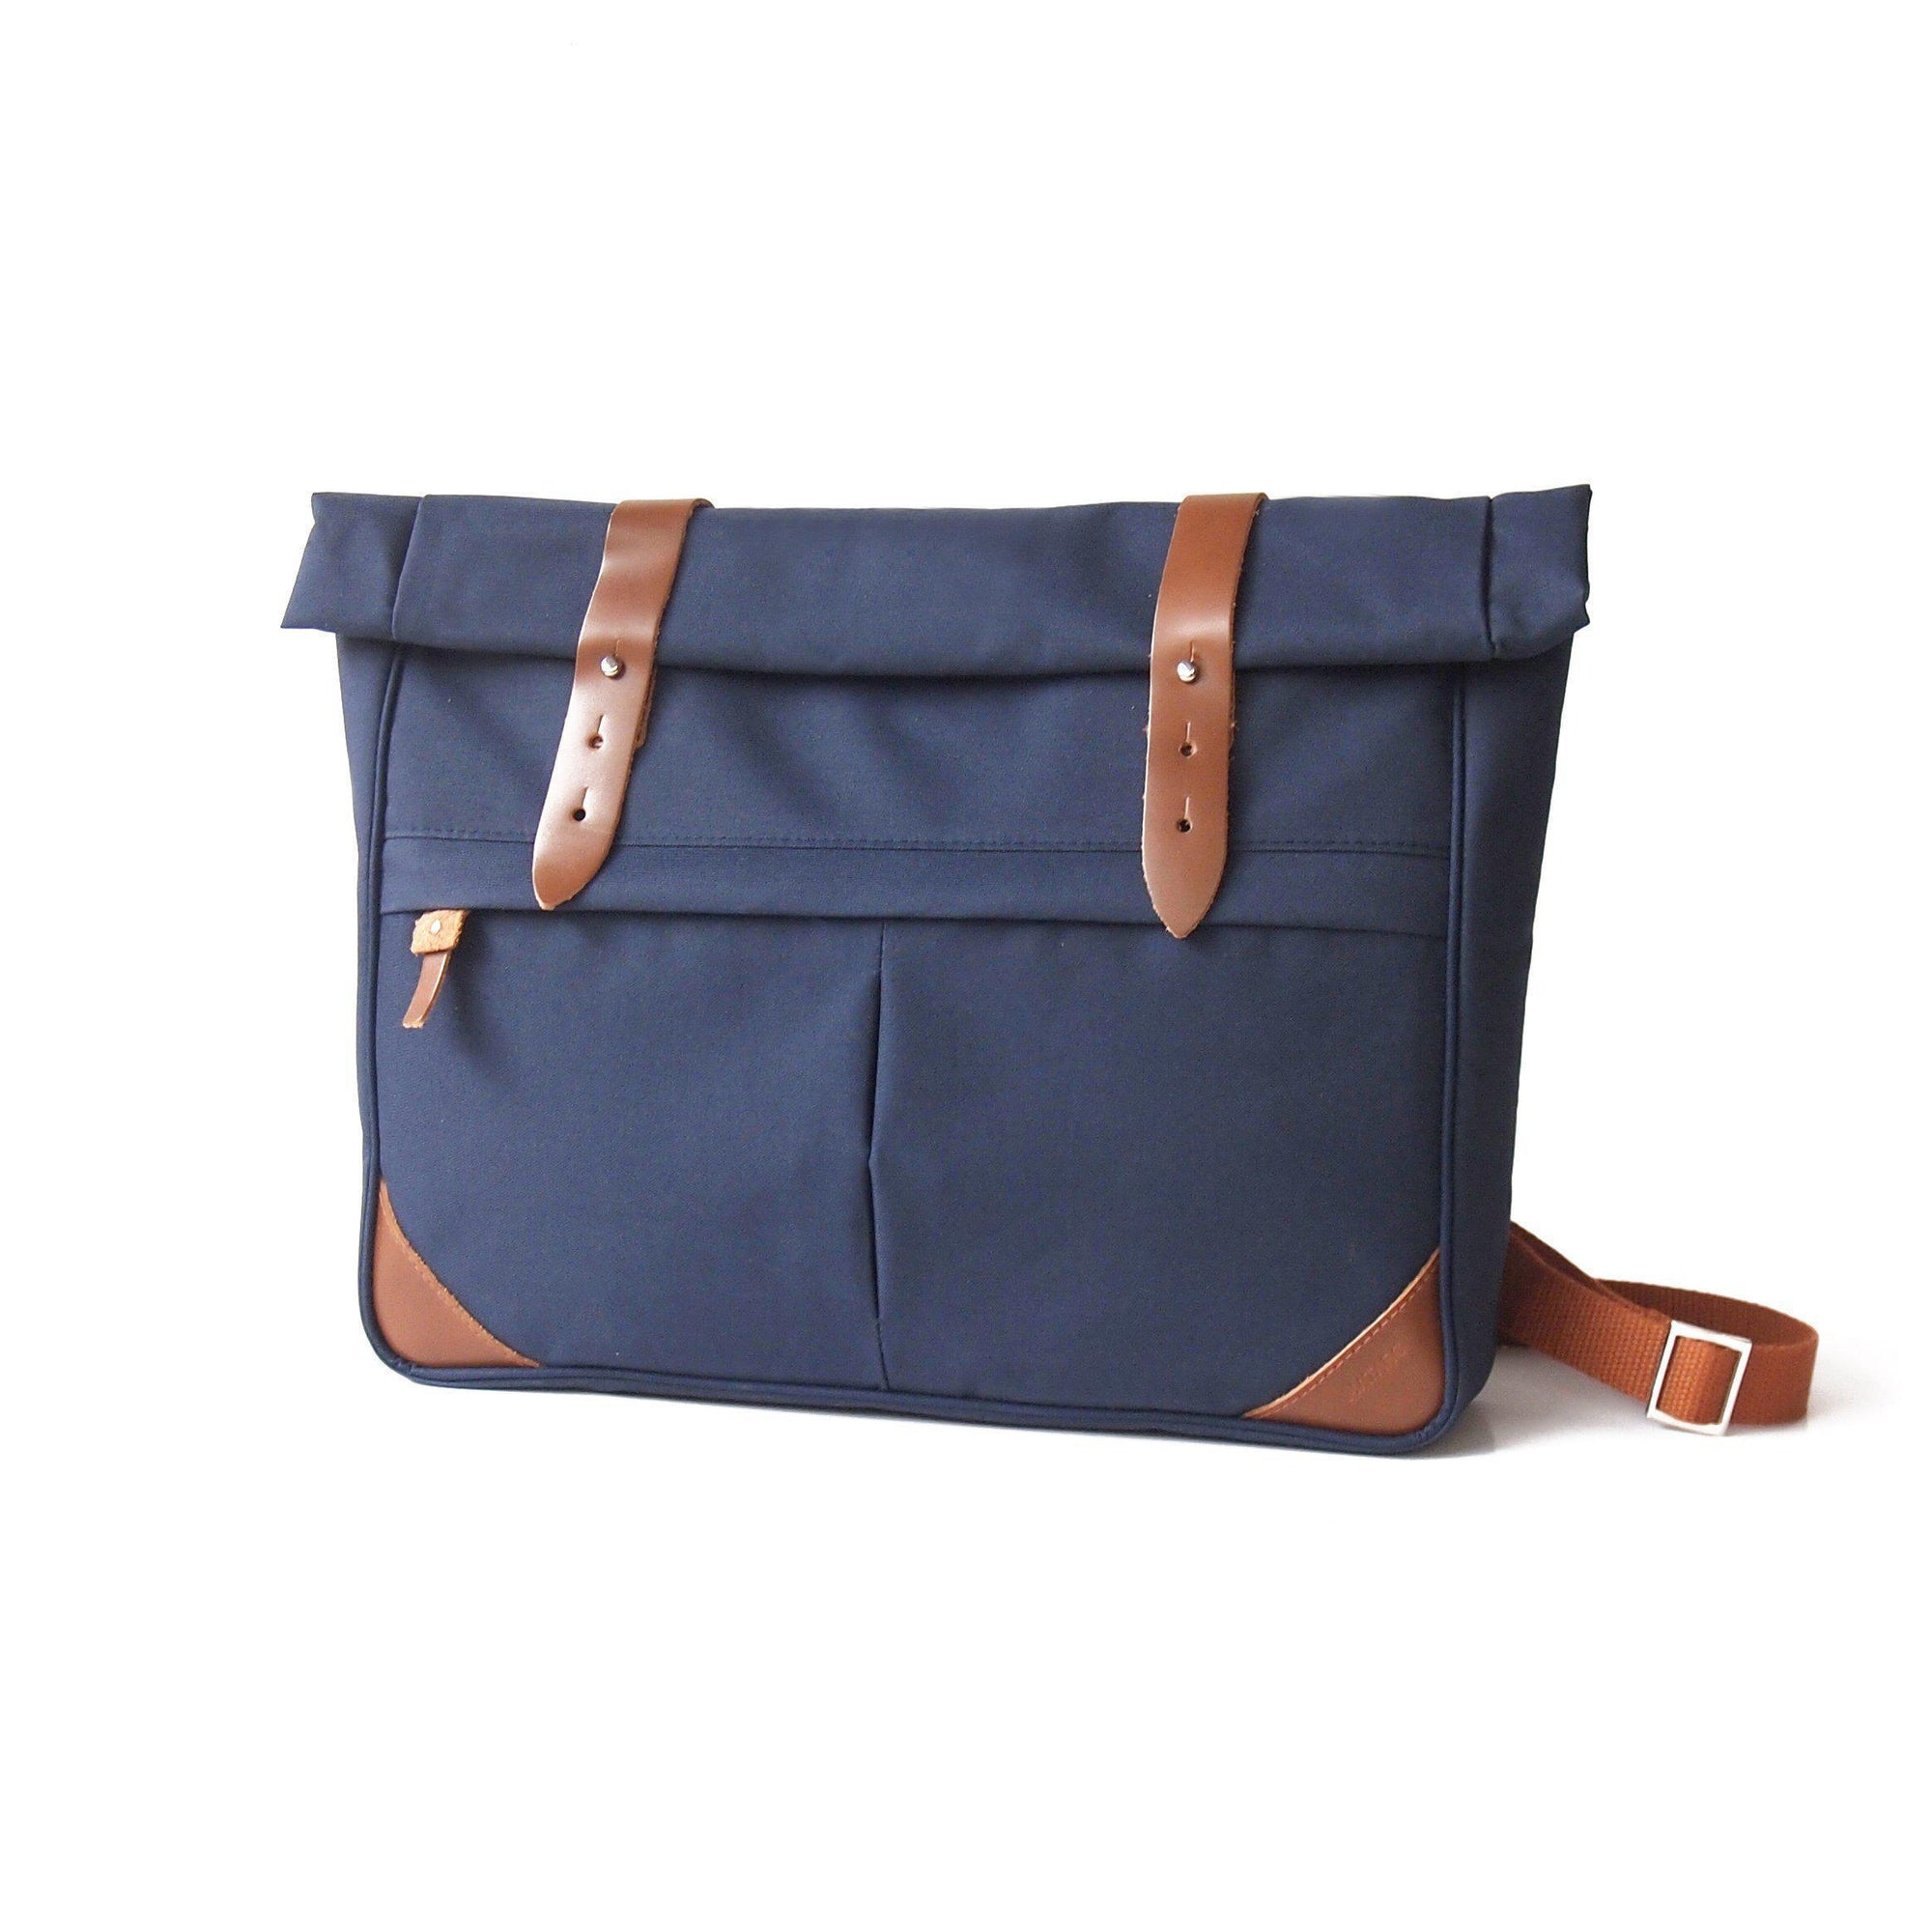 Mat Archer Merge Messenger Bag with Leather Detail-Mat Archer-Temples and Markets